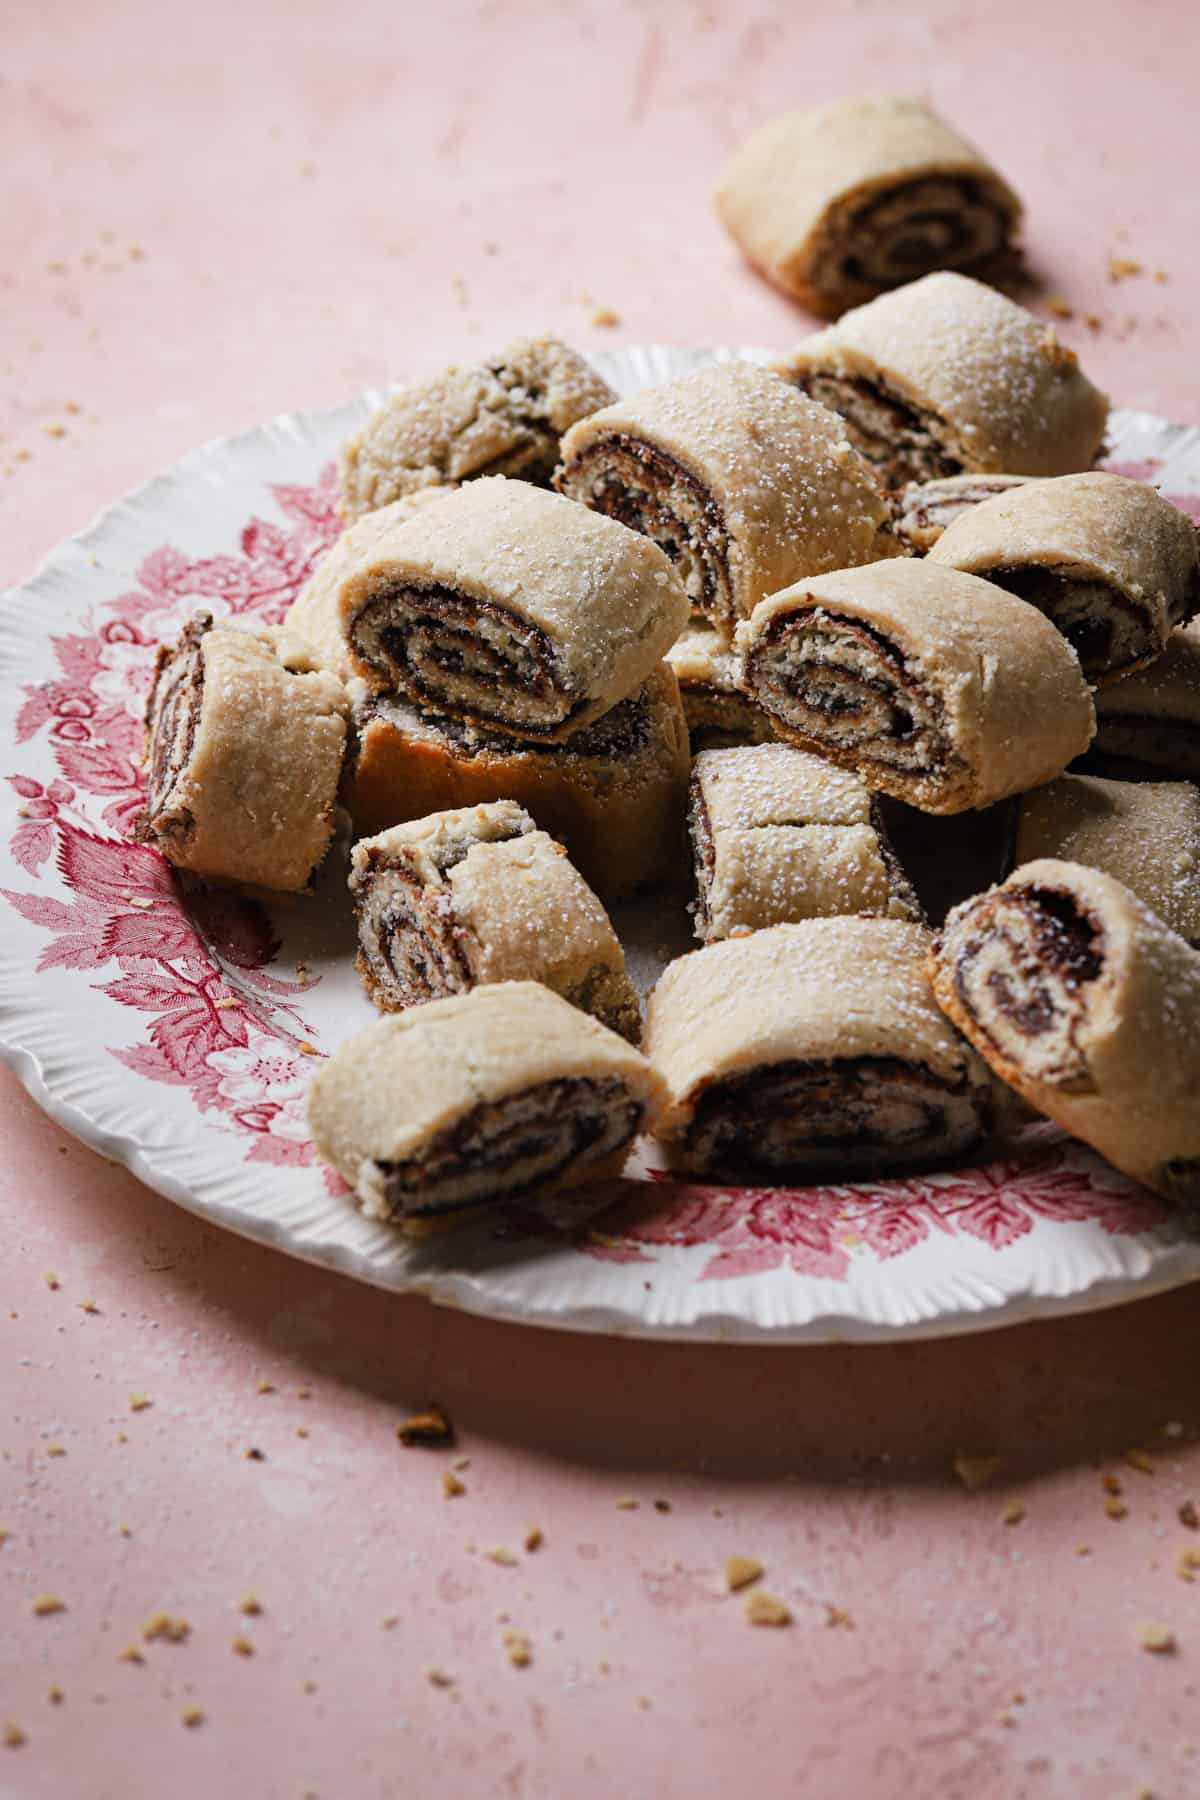 Tender and melt in the mouth cookies filled with chocolate.